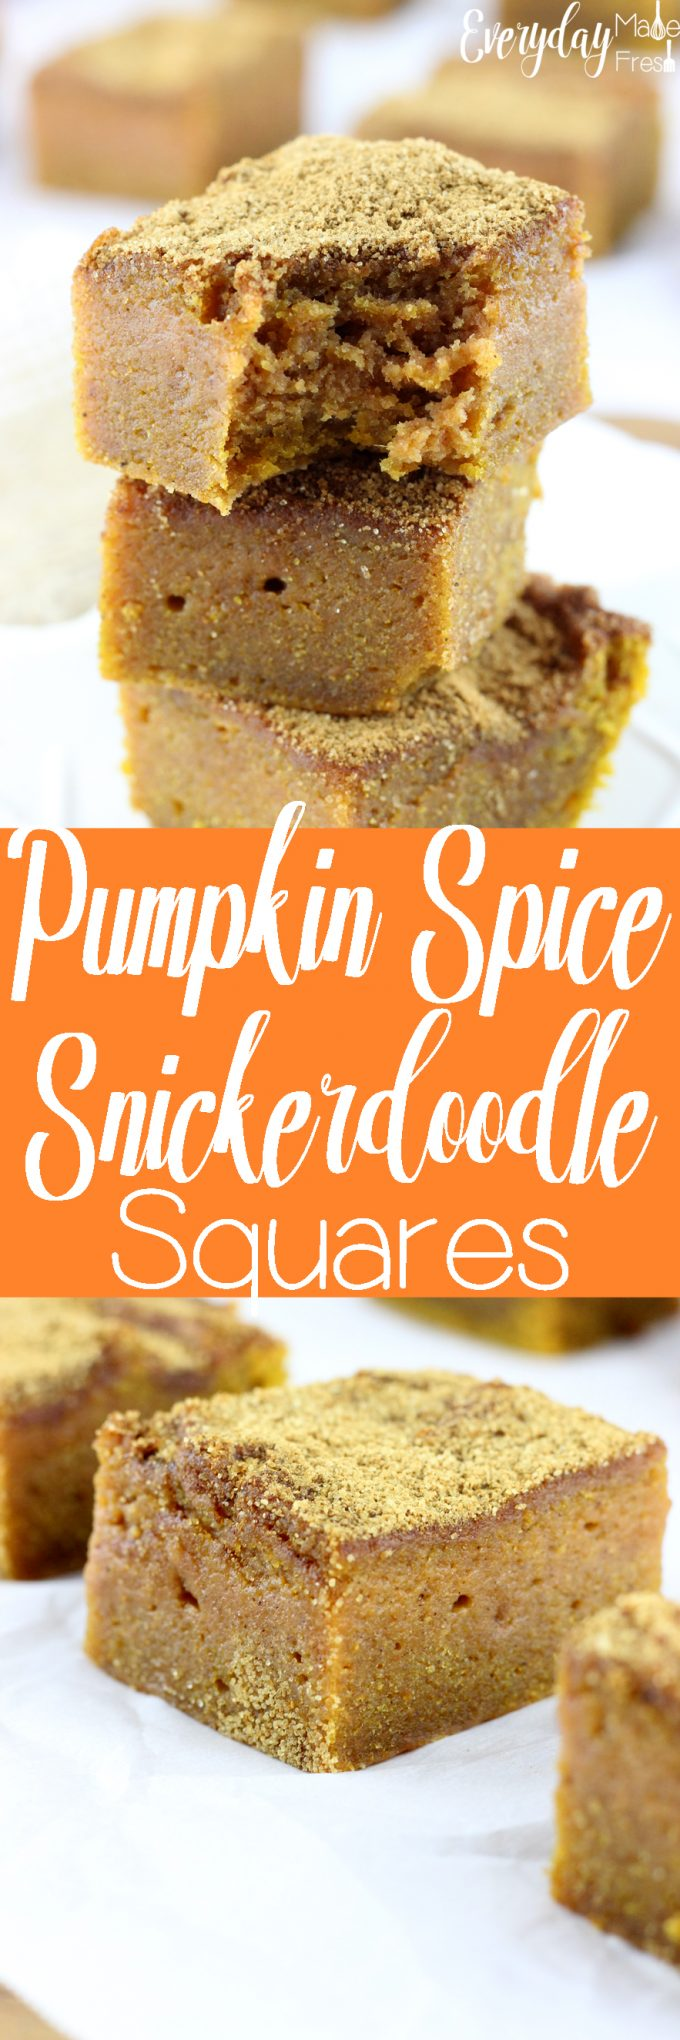 Soft and super moist, full of pumpkin spice flavor, and perfectly topped with a mixture of cinnamon and sugar goodness; these Pumpkin Spice Snickerdoodle Squares are pretty much perfection in a pan.   EverydayMadeFresh.com